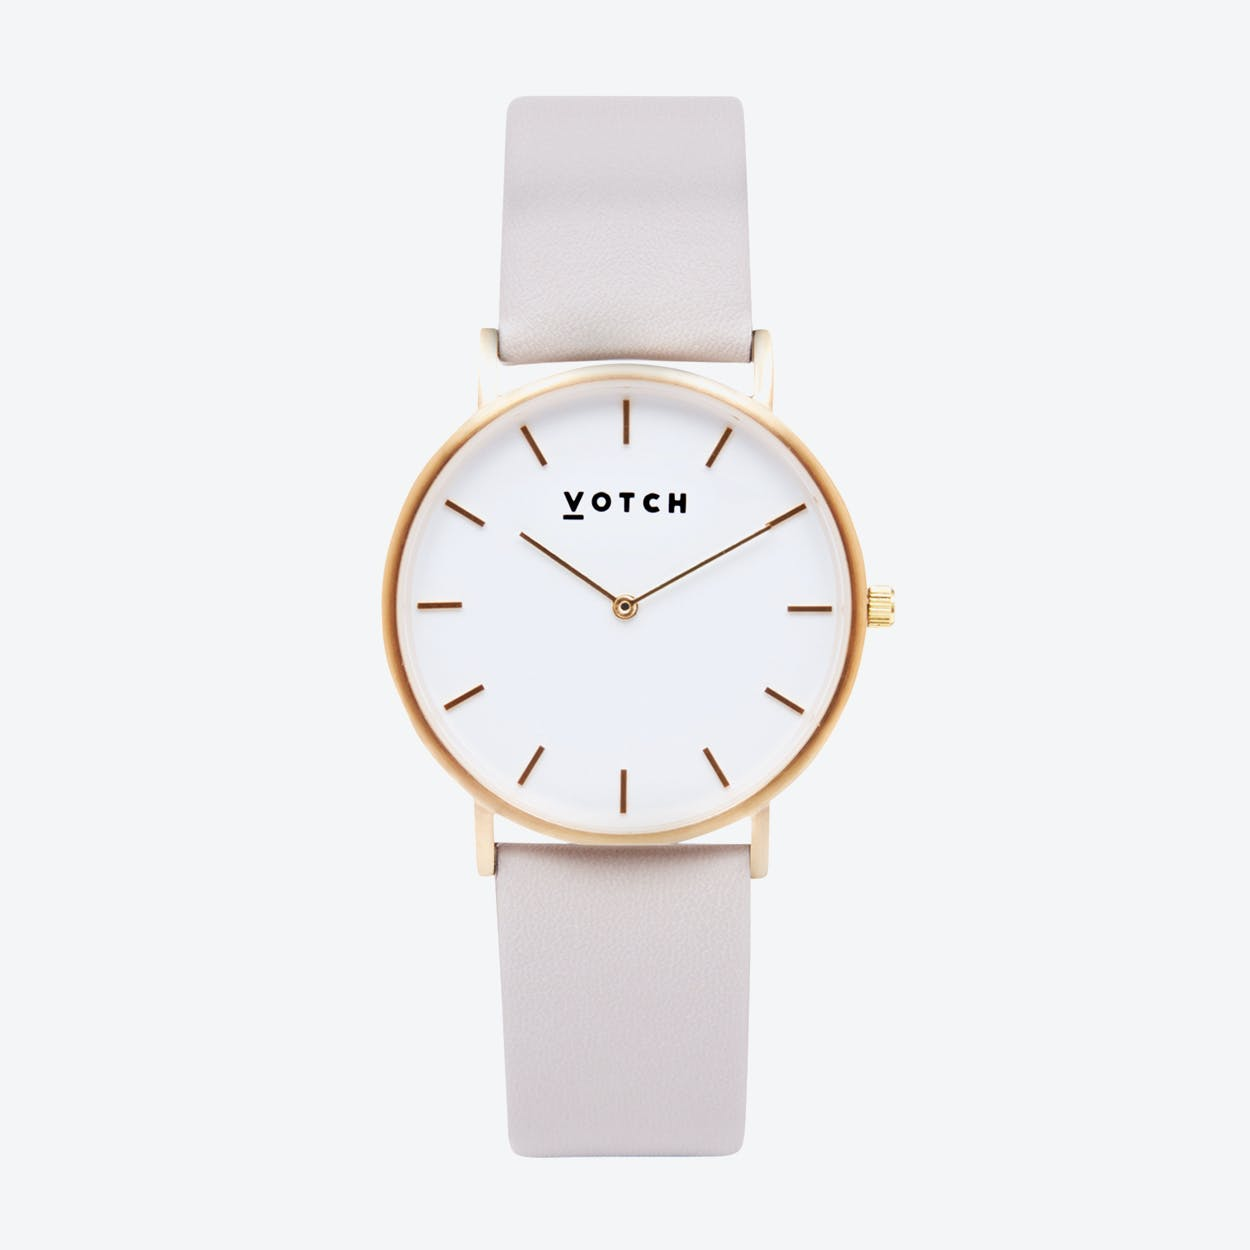 Classic Watch in Gold with White Face and Light Grey Vegan Leather Strap, 38mm